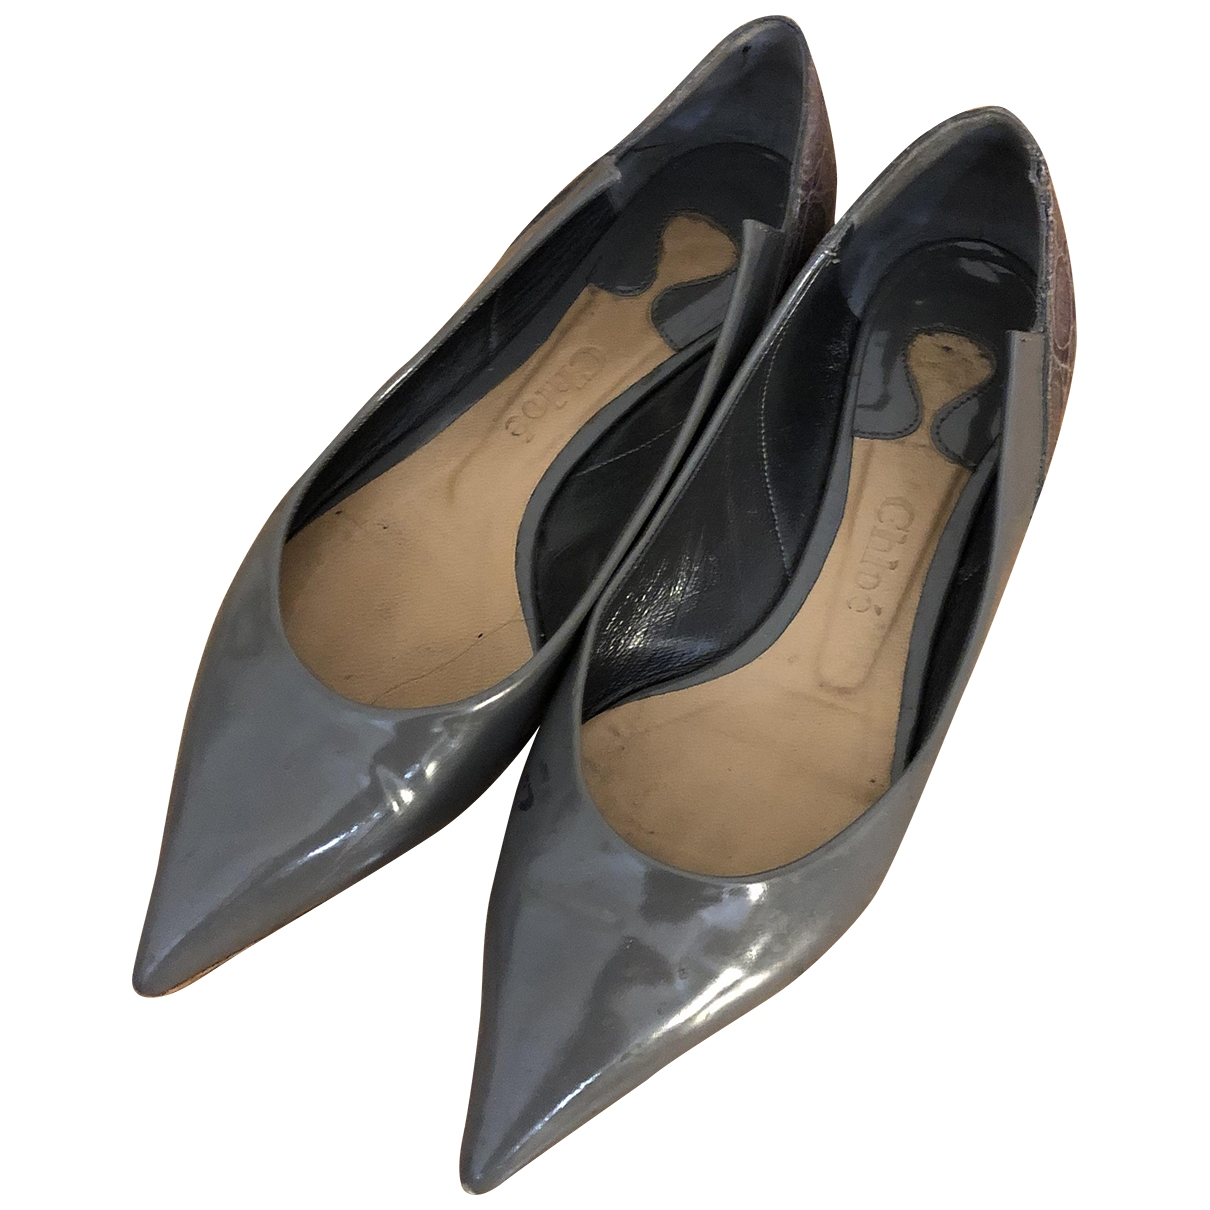 Chloe \N Ballerinas in  Grau Lackleder